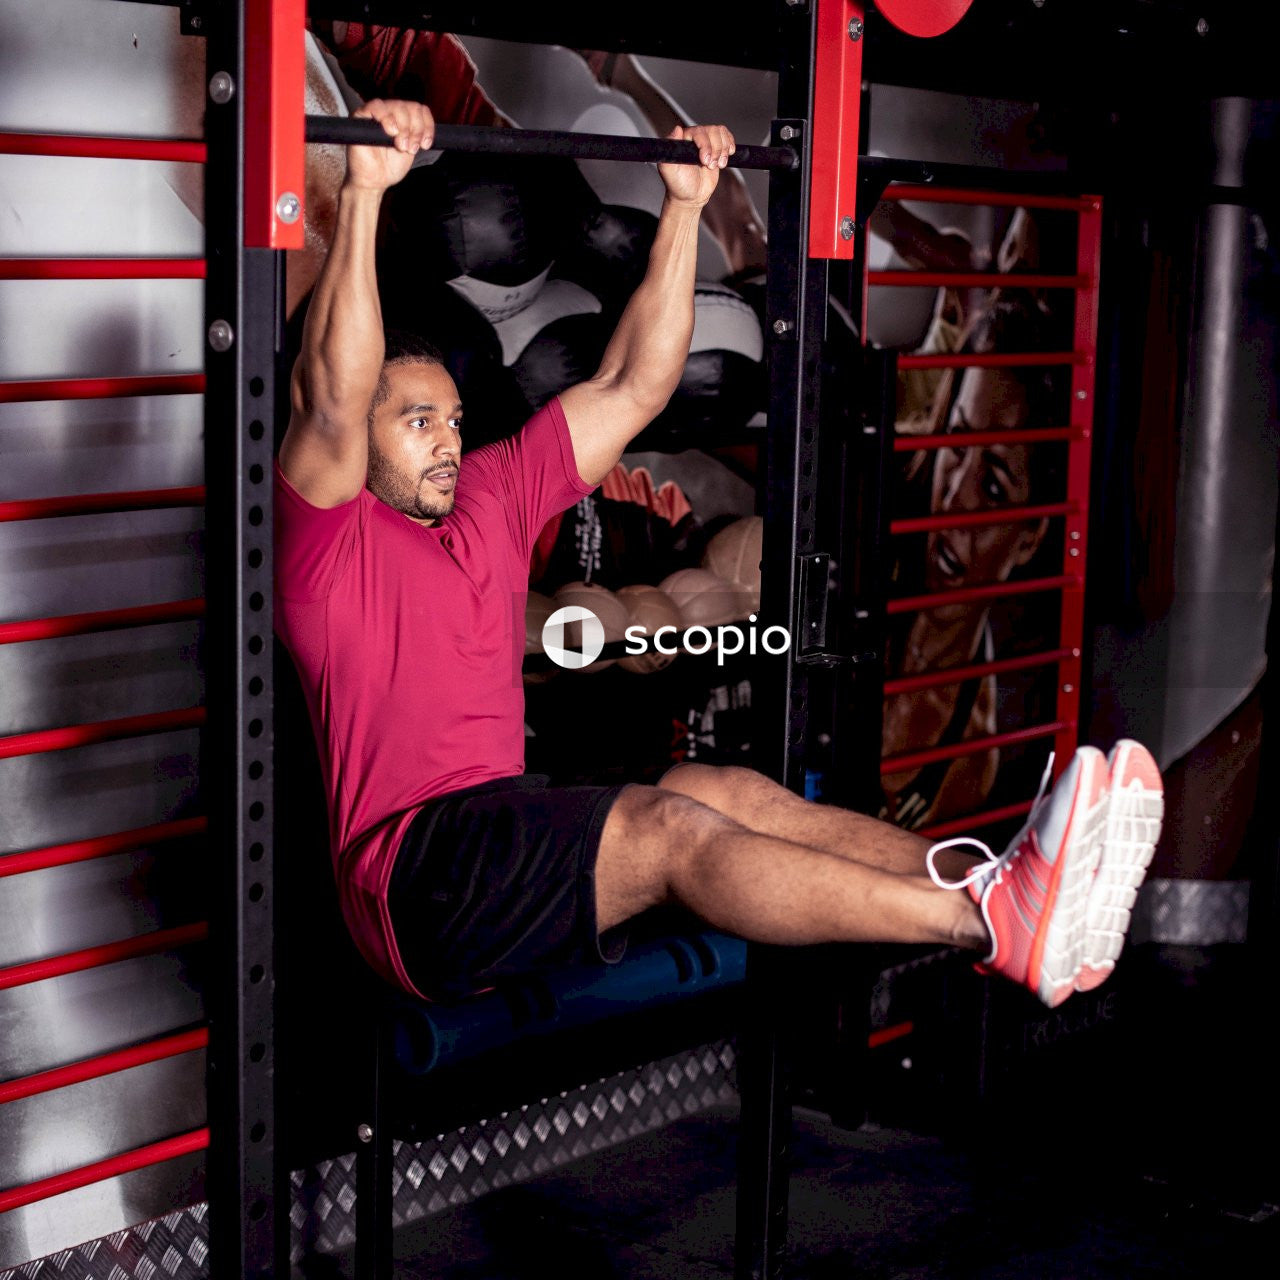 Man hanging on pull-up bar